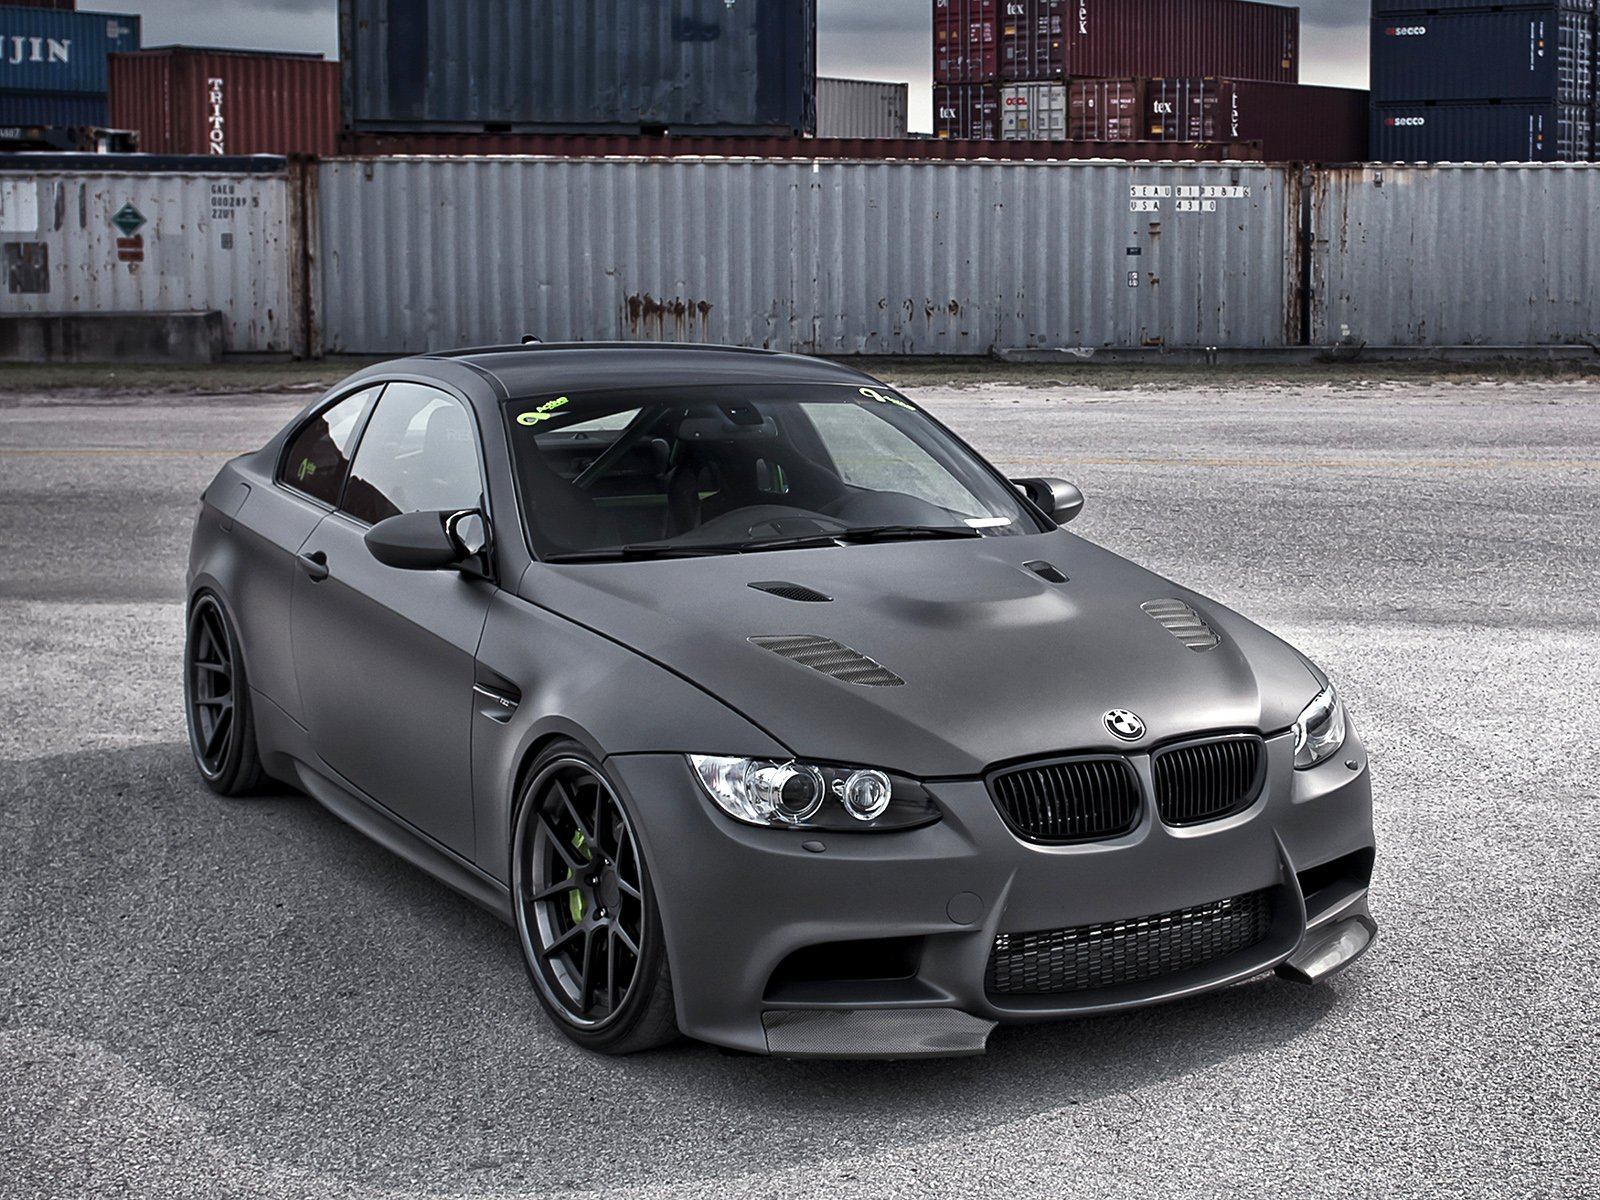 active autowerke bmw m3 coupe e92 cars modified 2009 wallpaper 1600x1200 761105 wallpaperup. Black Bedroom Furniture Sets. Home Design Ideas